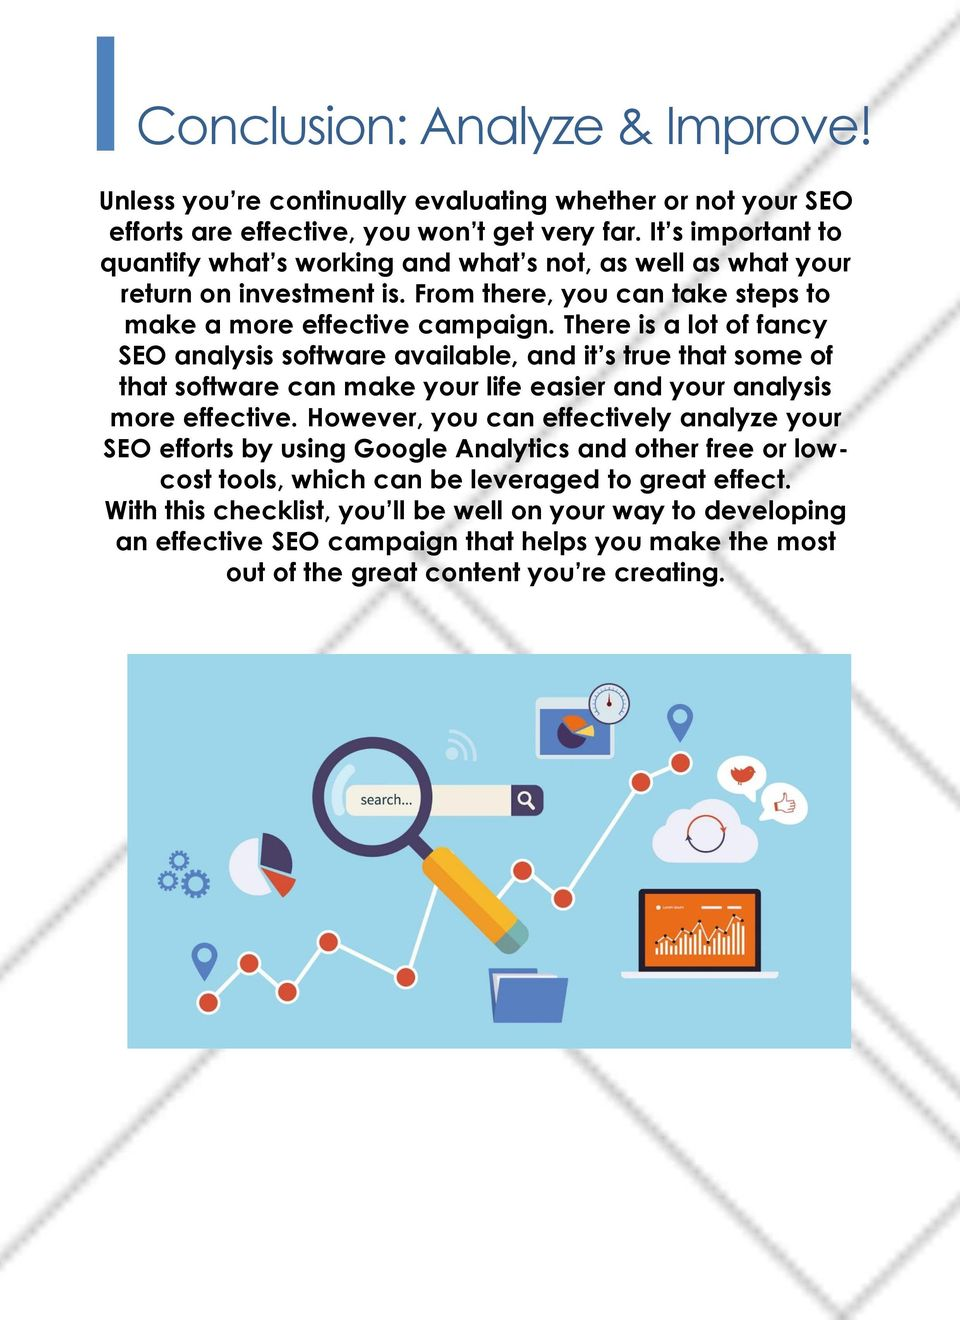 There is a lot of fancy SEO analysis software available, and it s true that some of that software can make your life easier and your analysis more effective.